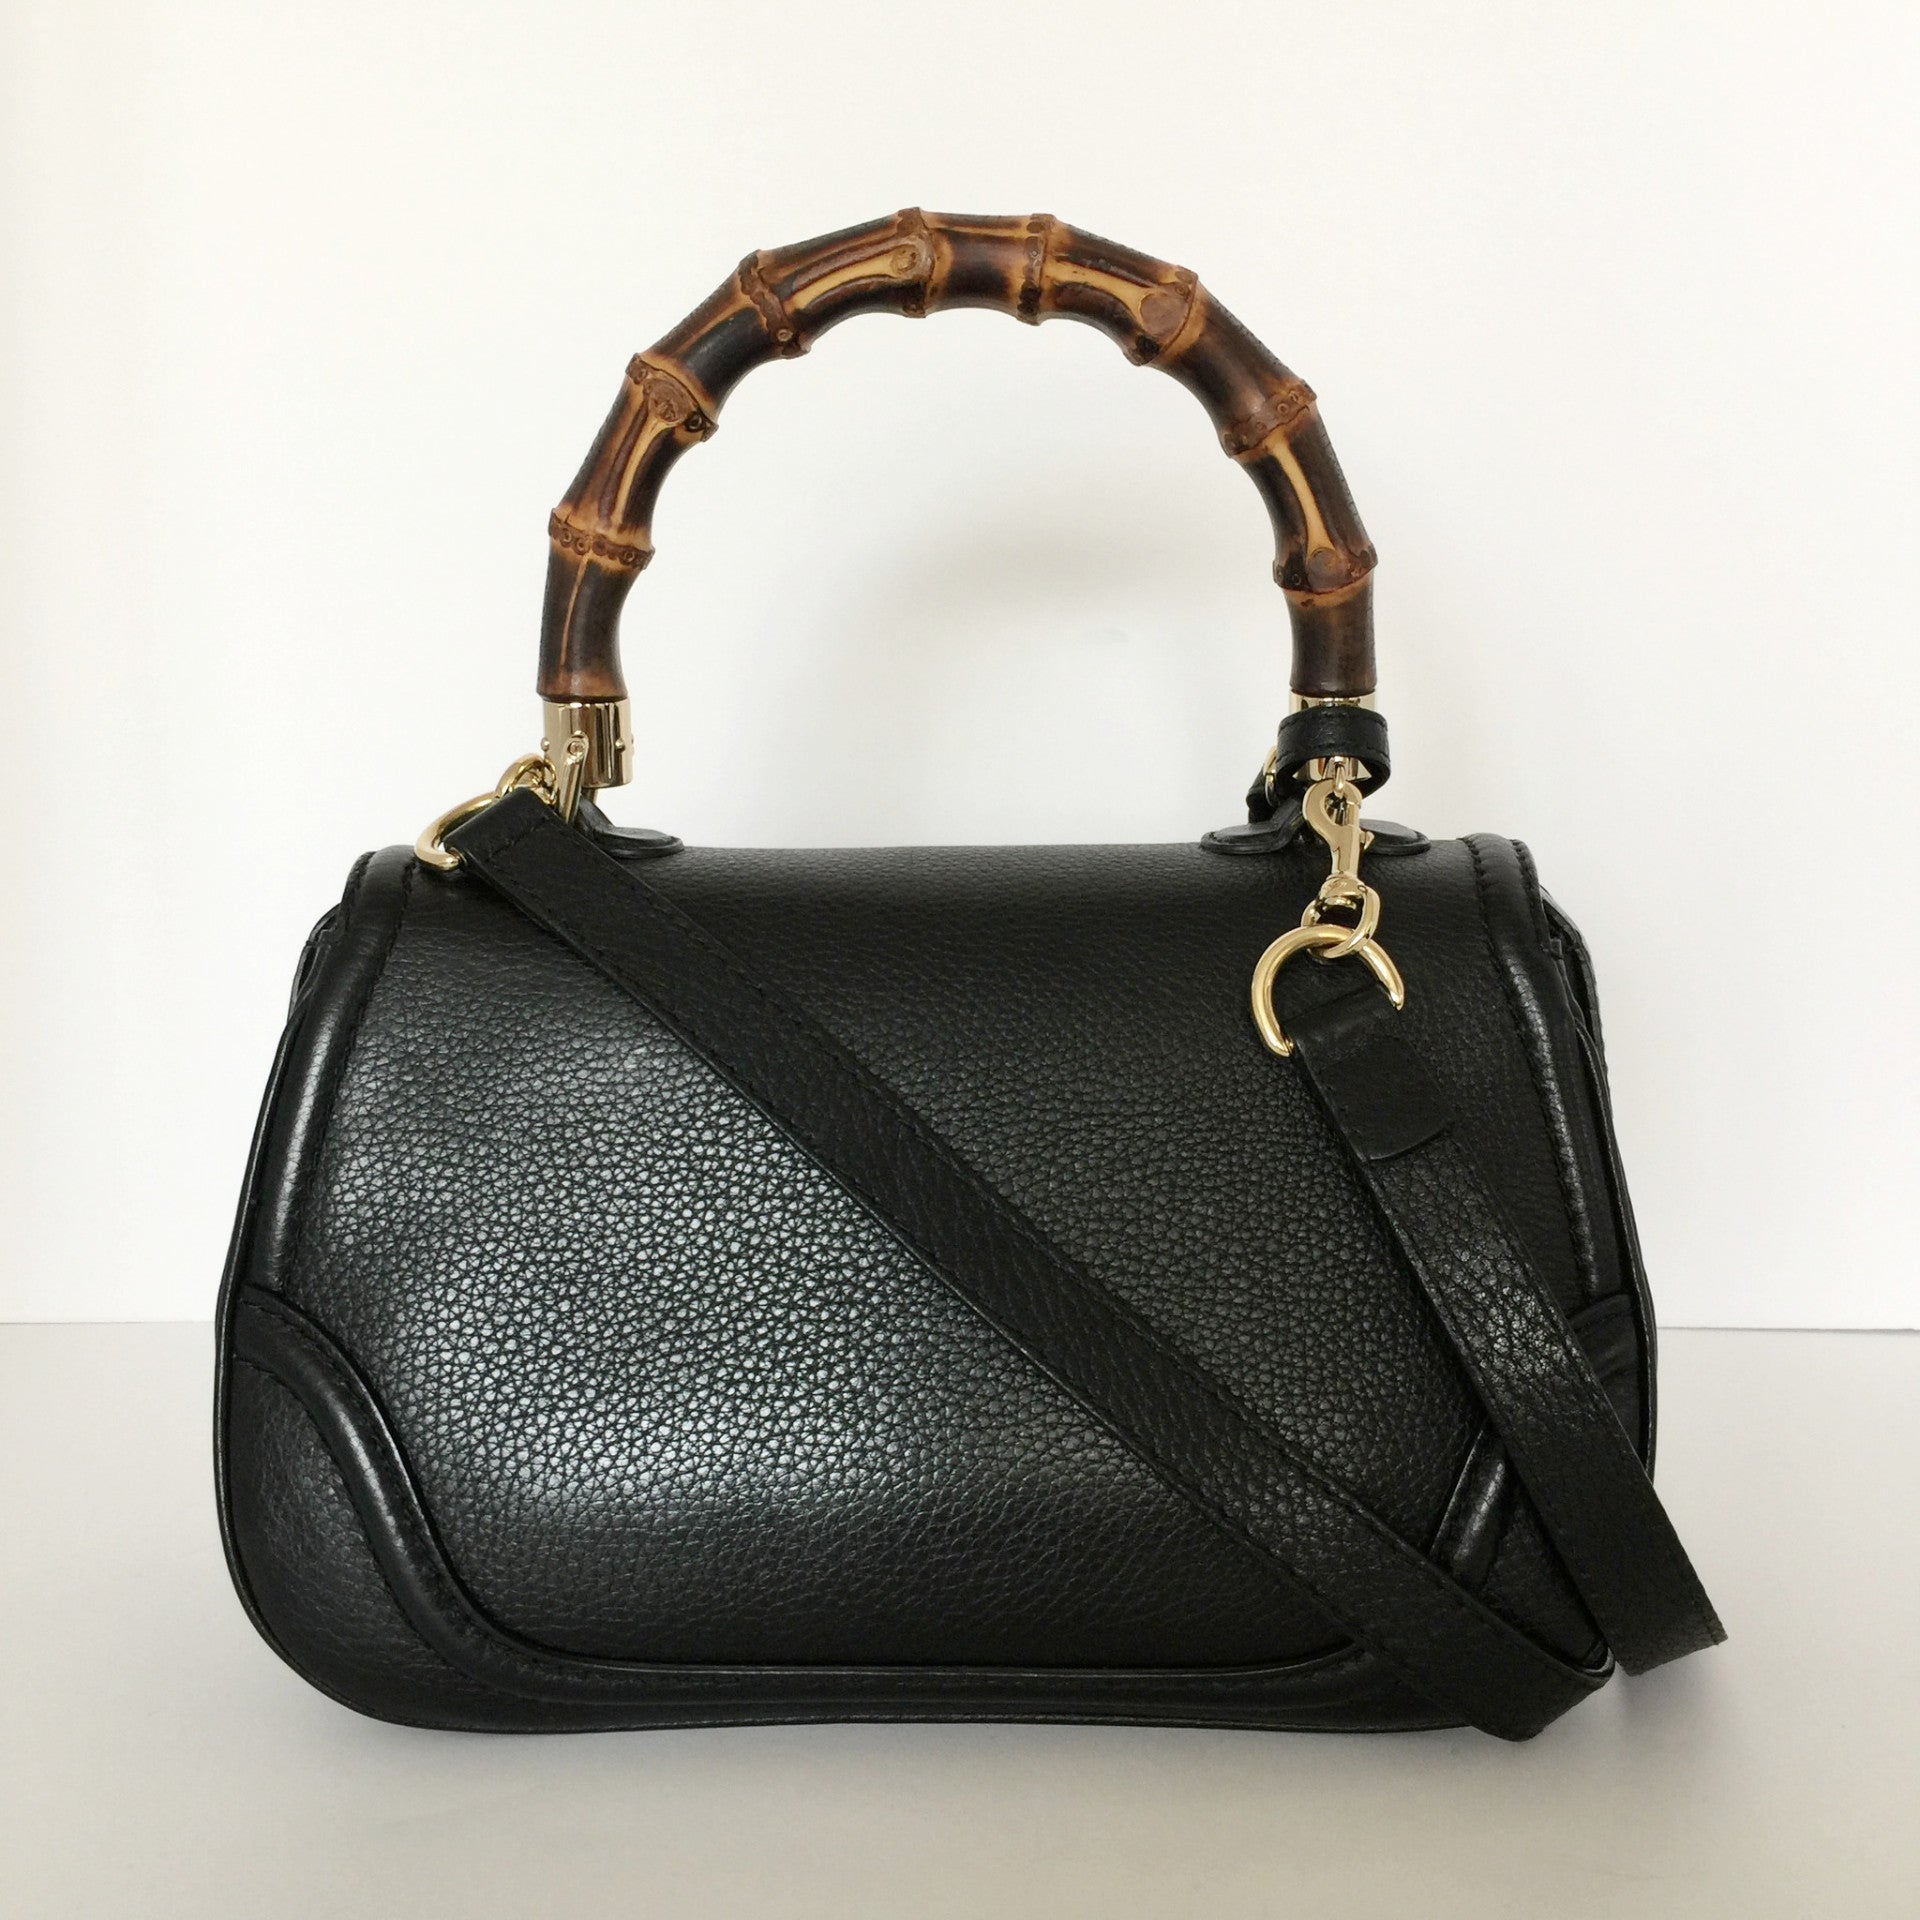 Authentic GUCCI Black Bamboo Handbag